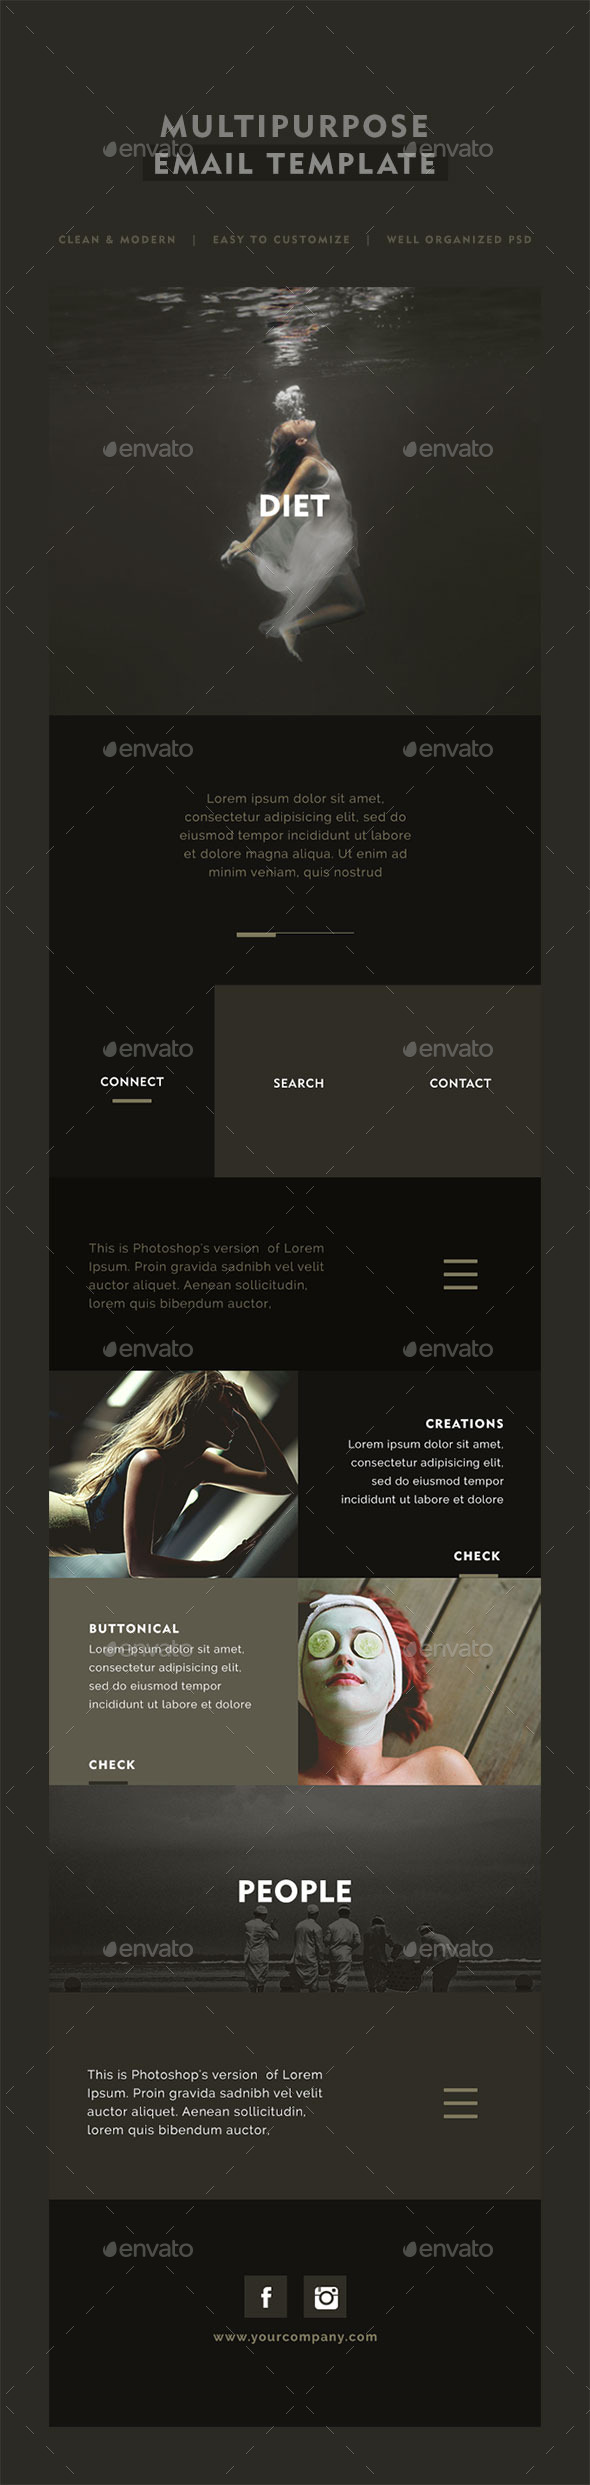 Diet Multipurpose Email Template